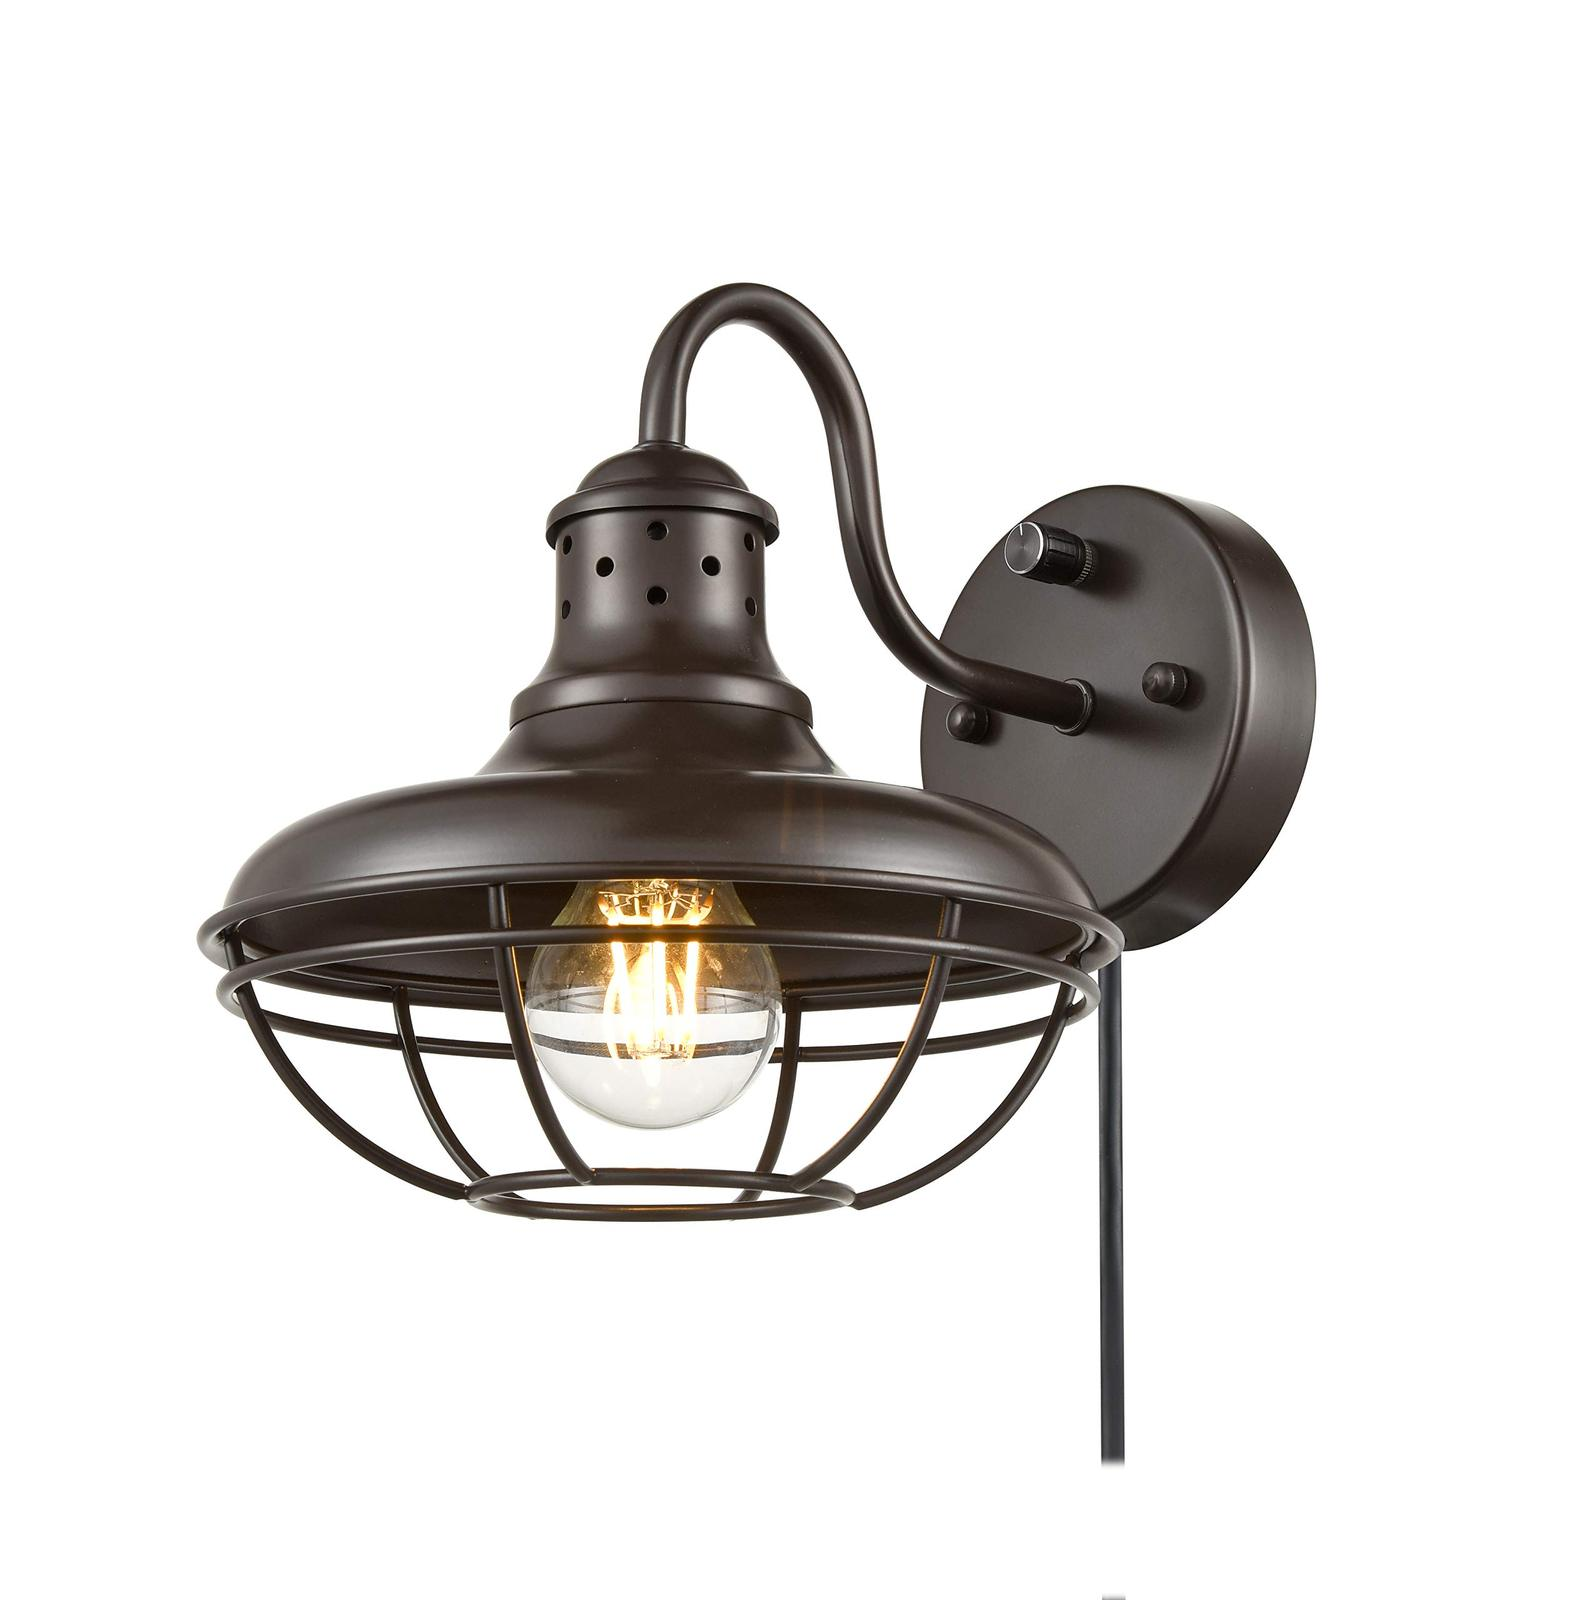 Dazhuan Industrial Plug-in Wall Sconce Light with On/Off ...